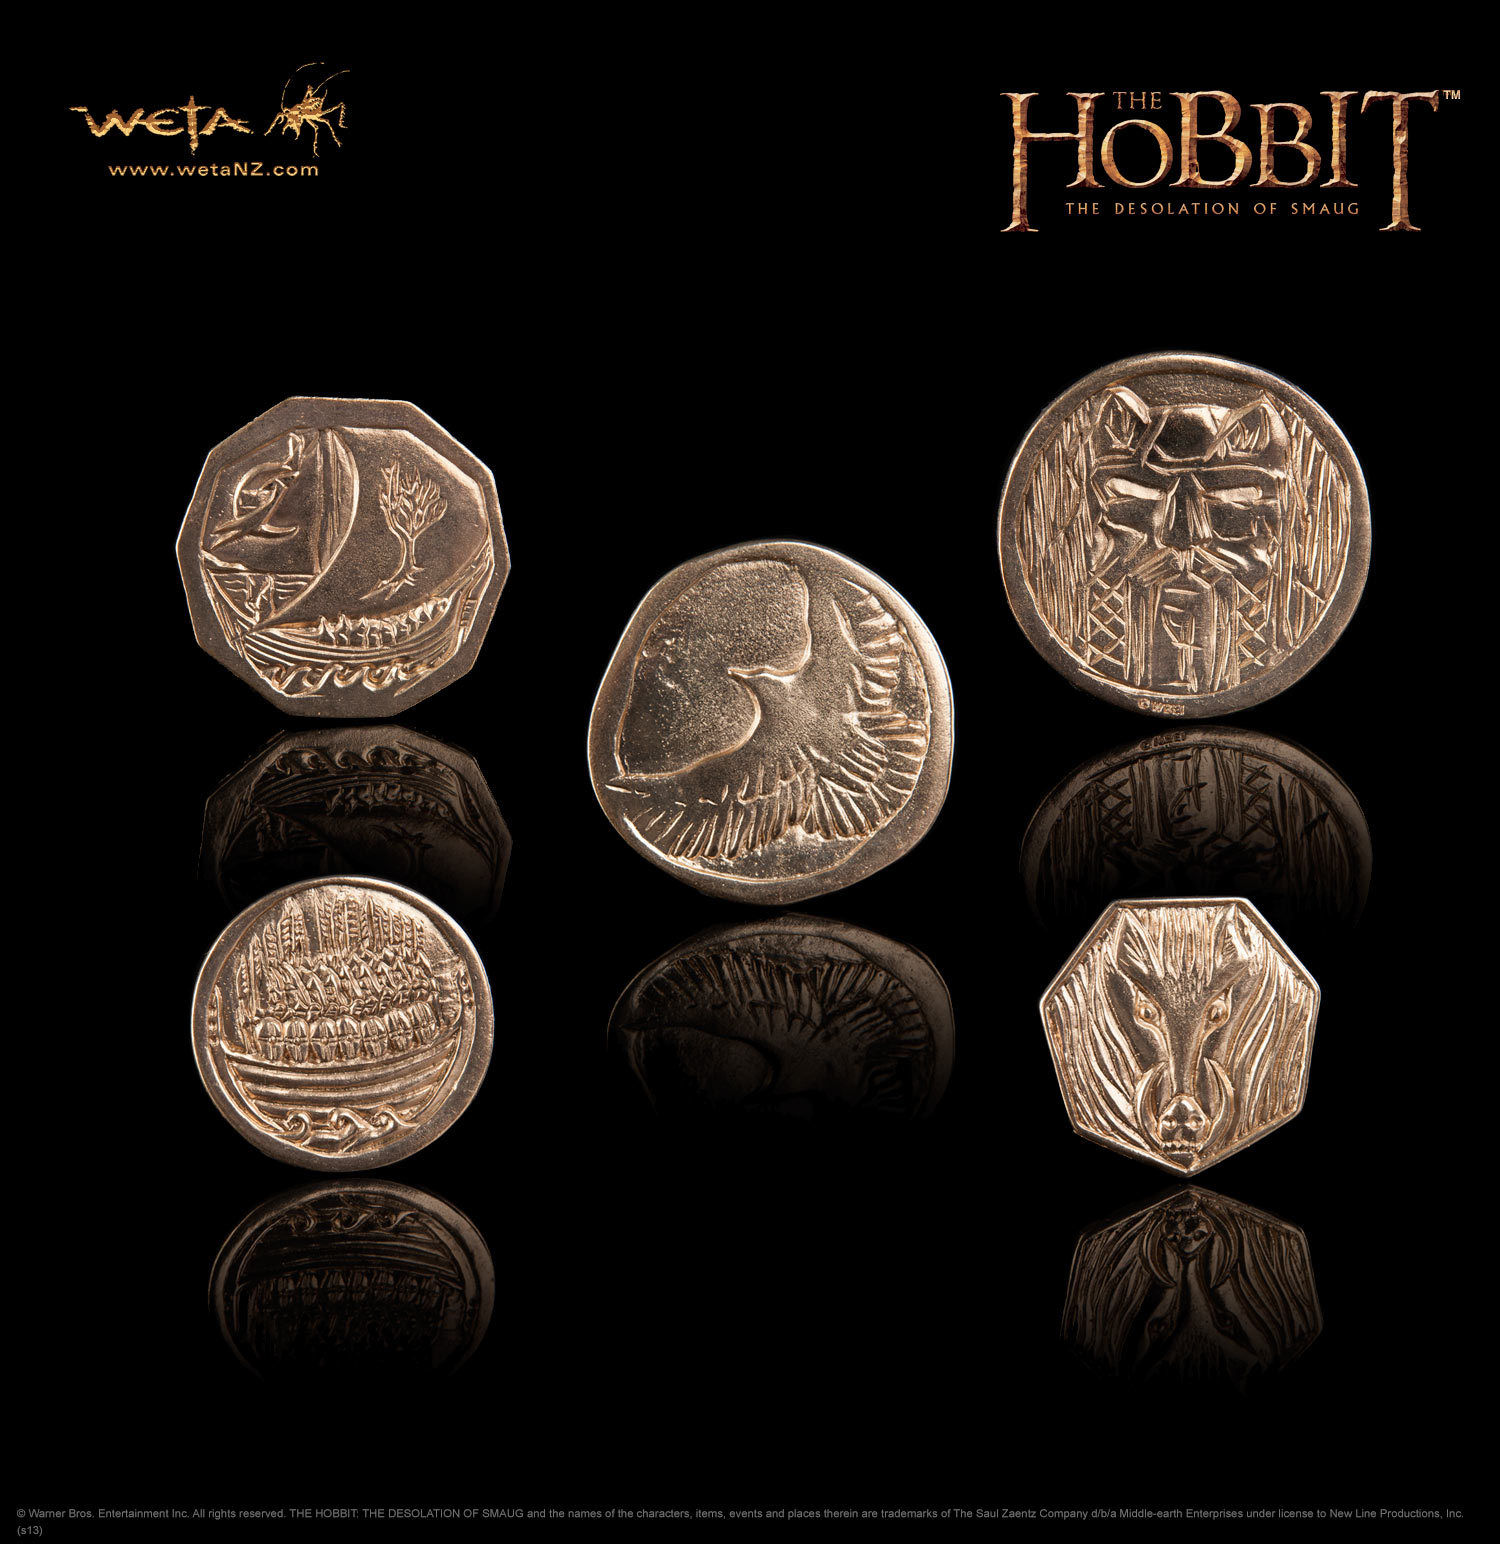 The Hobbit: Desolation of Smaug Treasure Coin Pouch - by Weta image